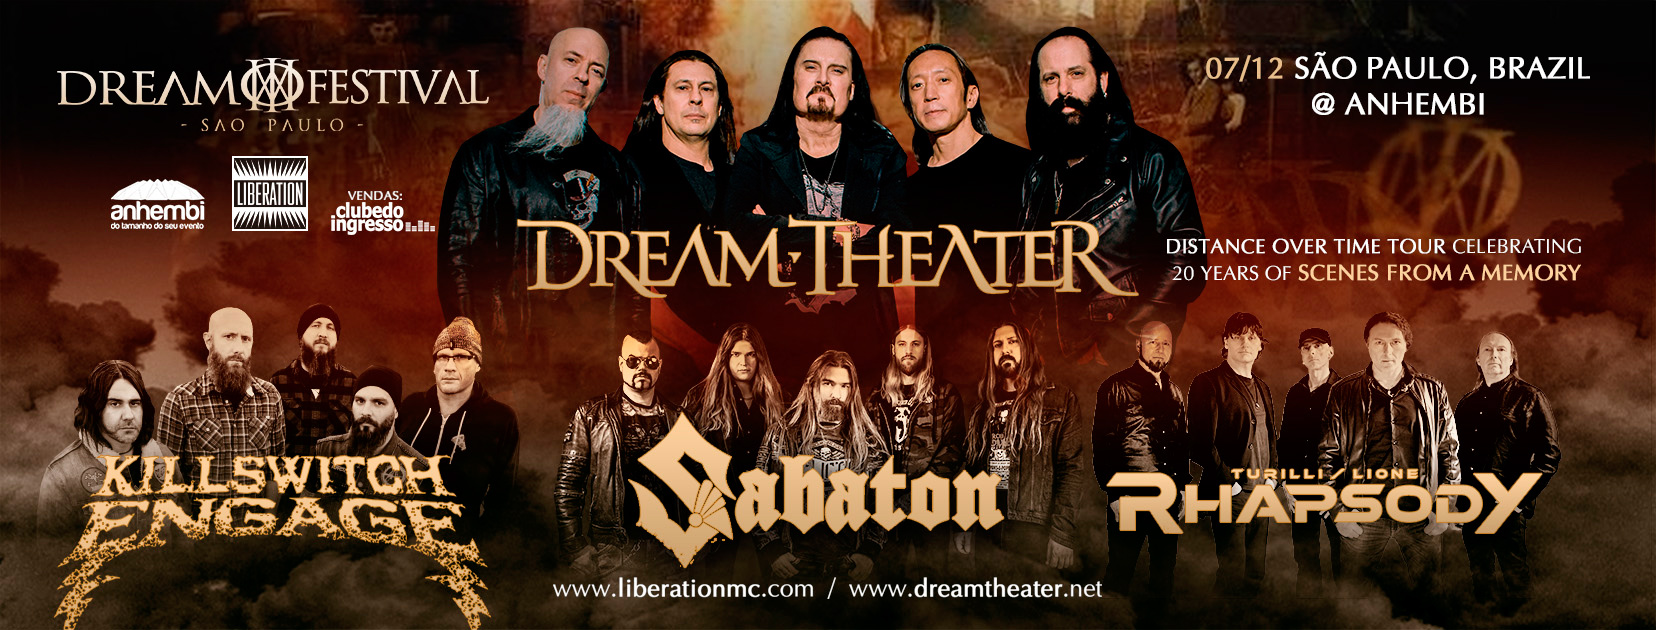 Liberation-Dream-Theater-Fest—-capa-pagina